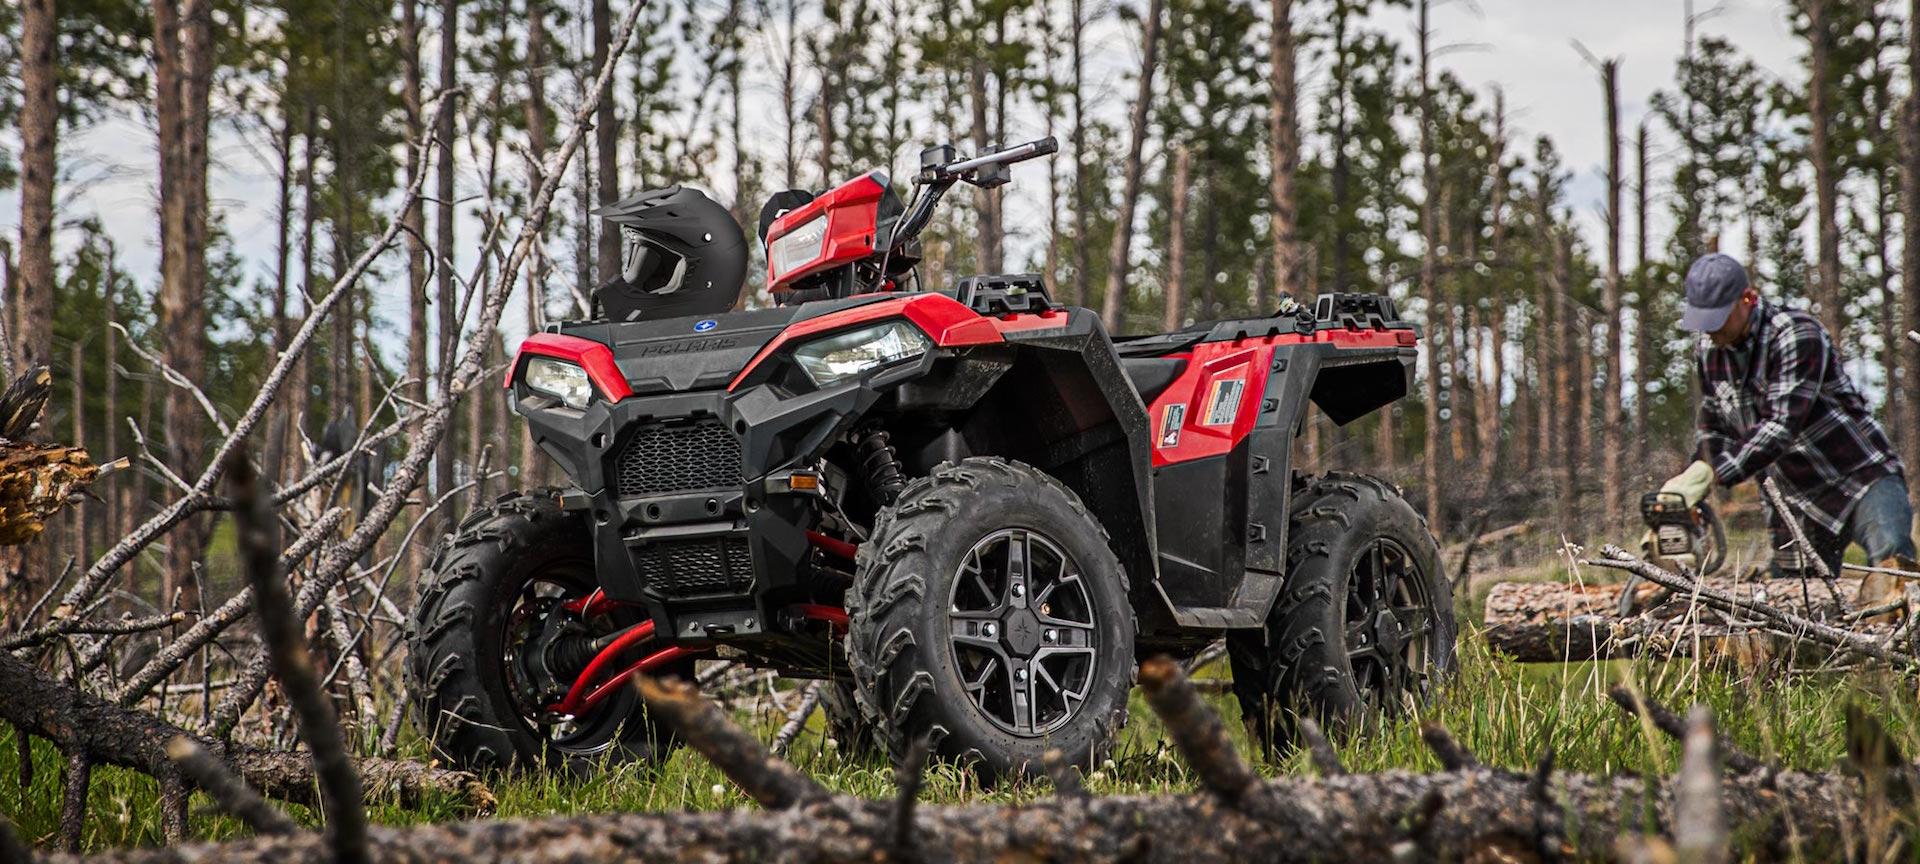 Nový Polaris Sportsman XP1000 2018